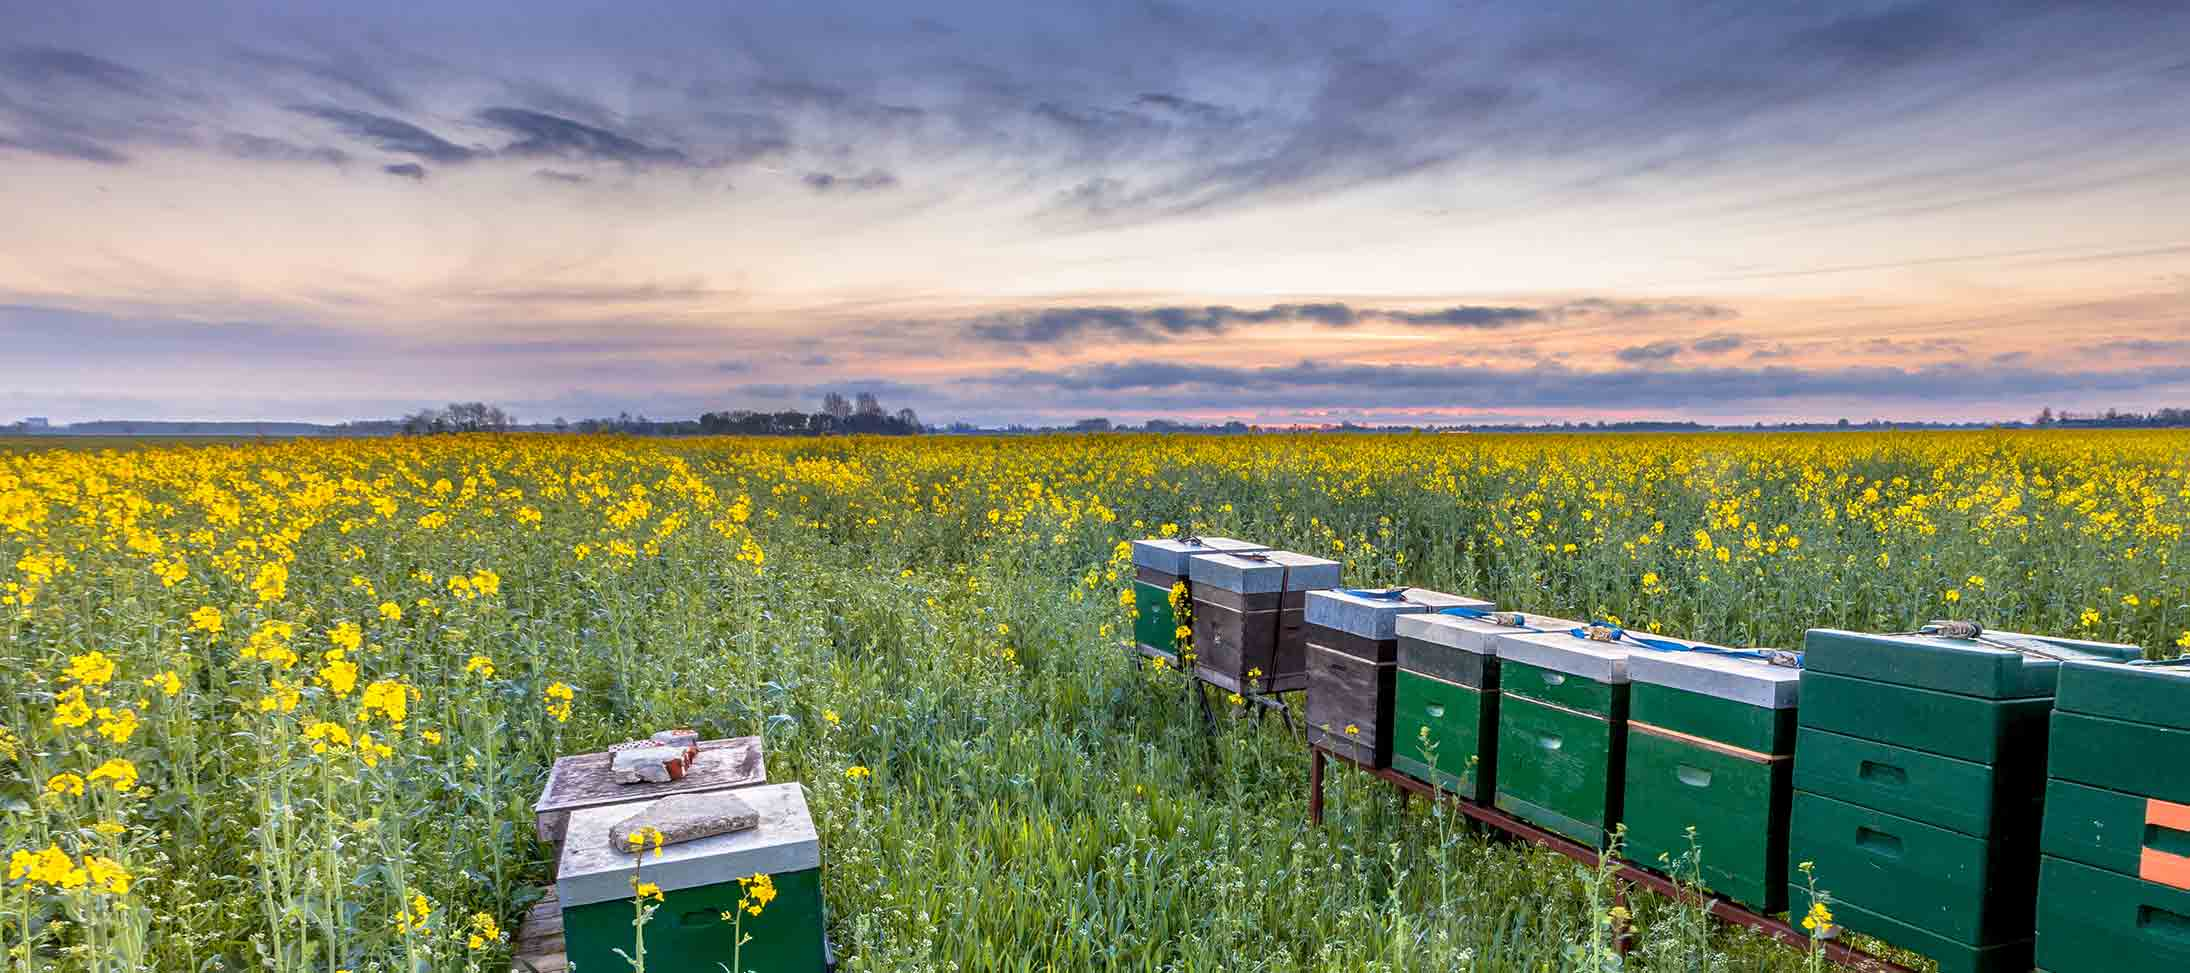 Beehives in a bright yellow rapeseed field